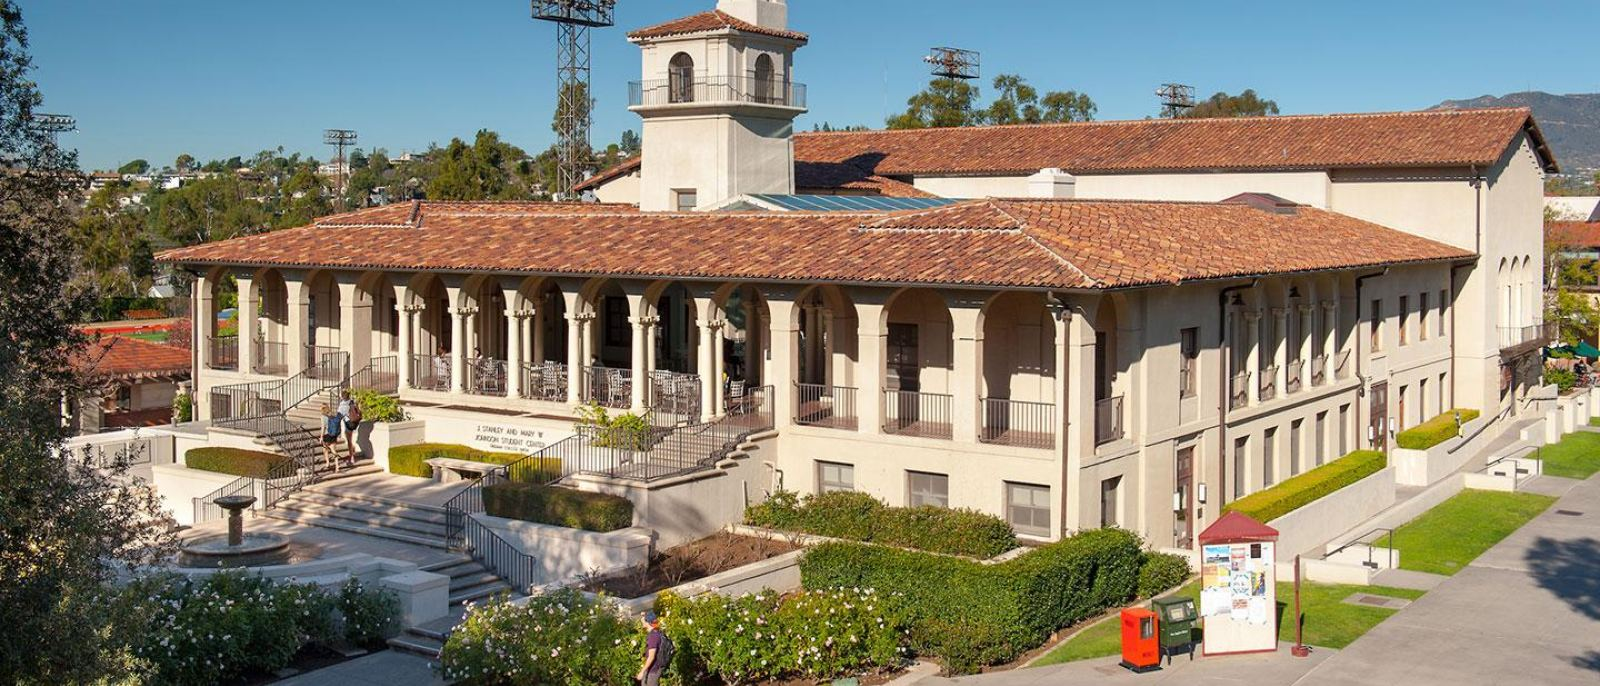 Johnson Student Center at Occidental College